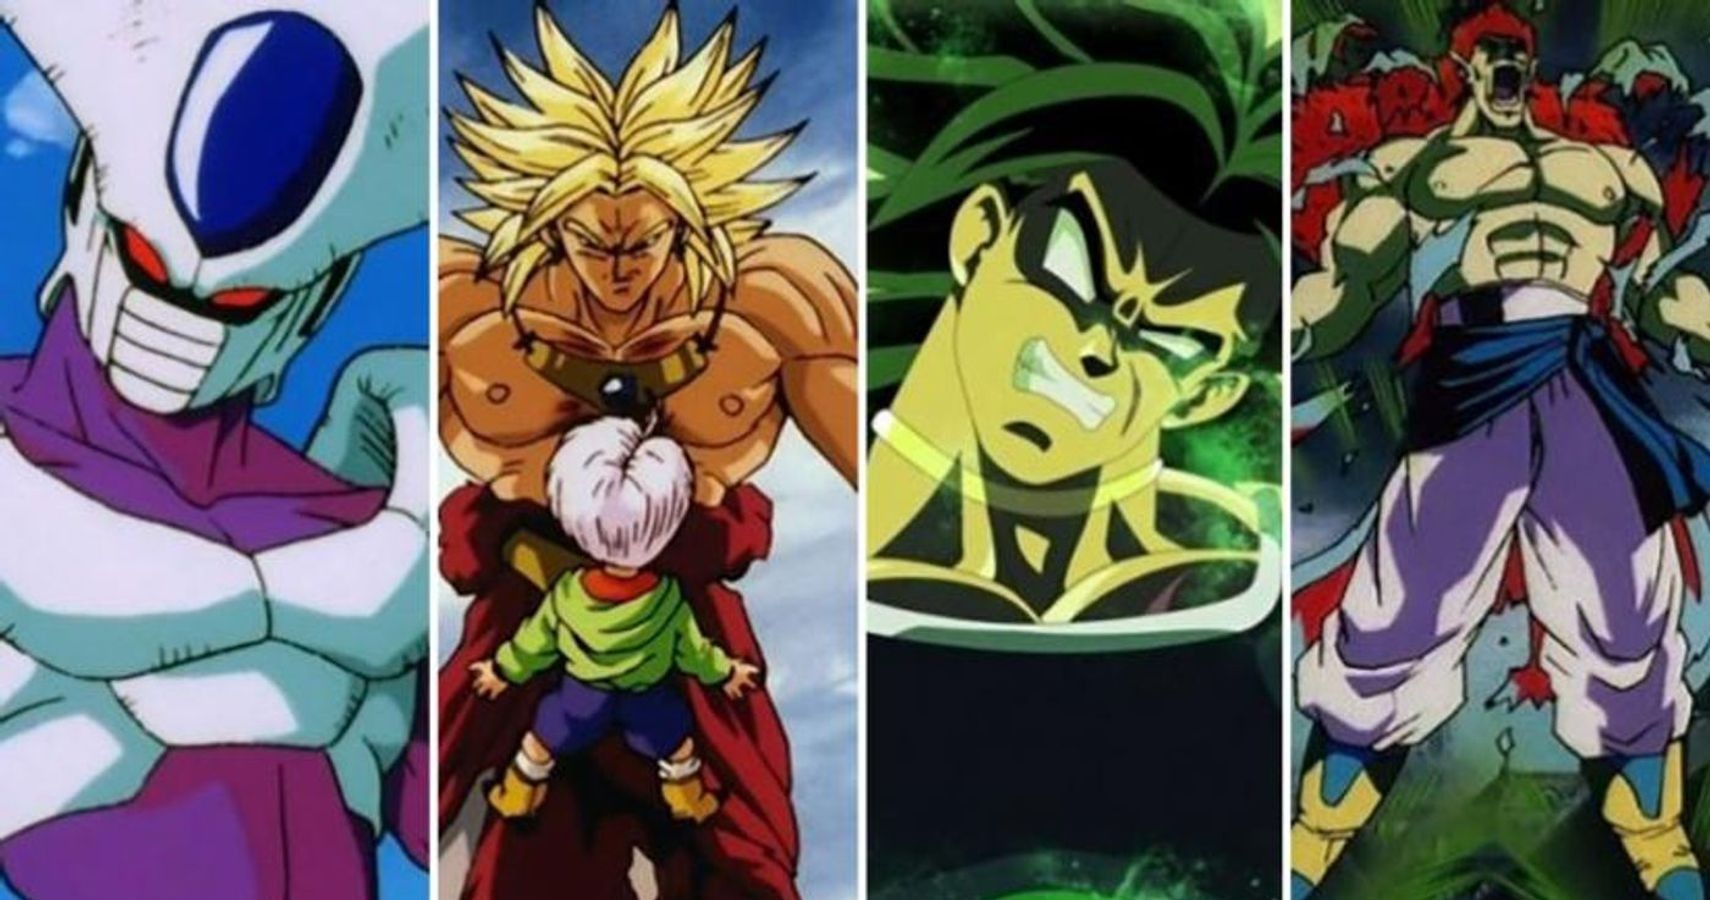 5 Dragon Ball Movie Villains That Are Rip Offs 5 That Are Totally Unique The j.crew credit card get 15% off your first j.crew credit card purchase.* 5 dragon ball movie villains that are